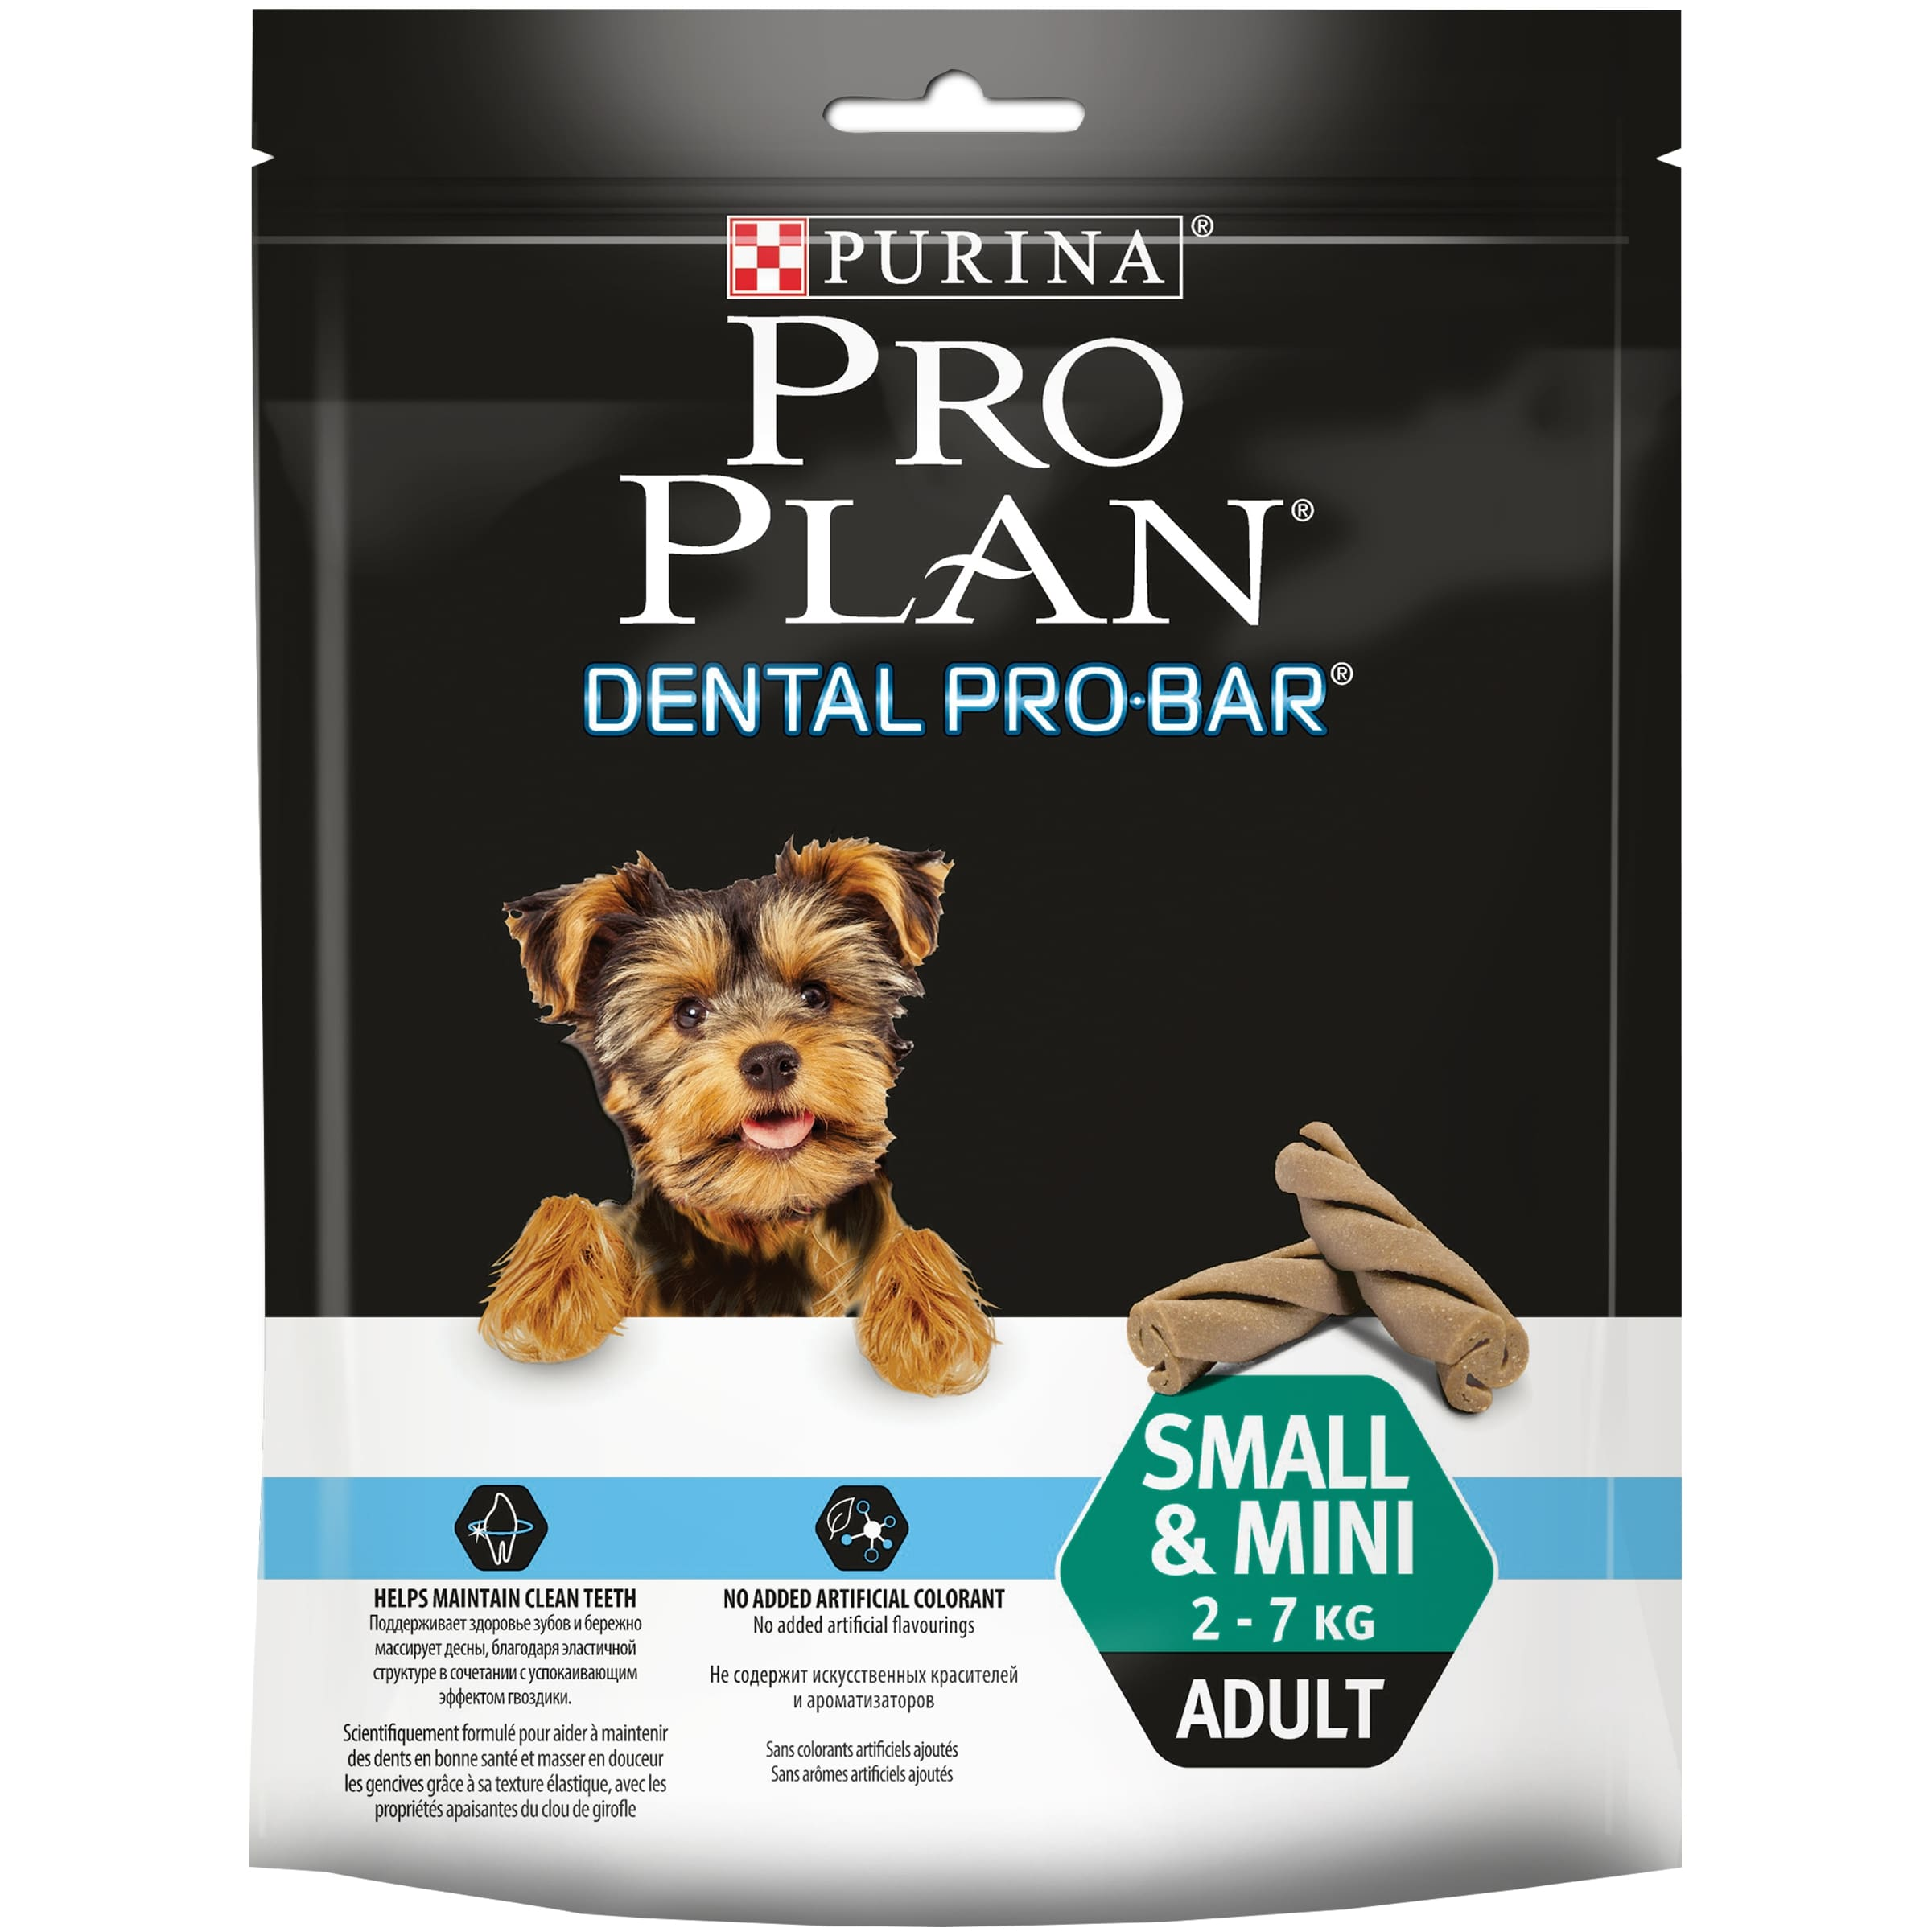 Delicacy PRO PLAN Dental Pro Bar S&M for maintaining oral health of dogs of small and dwarf breeds, 150 g